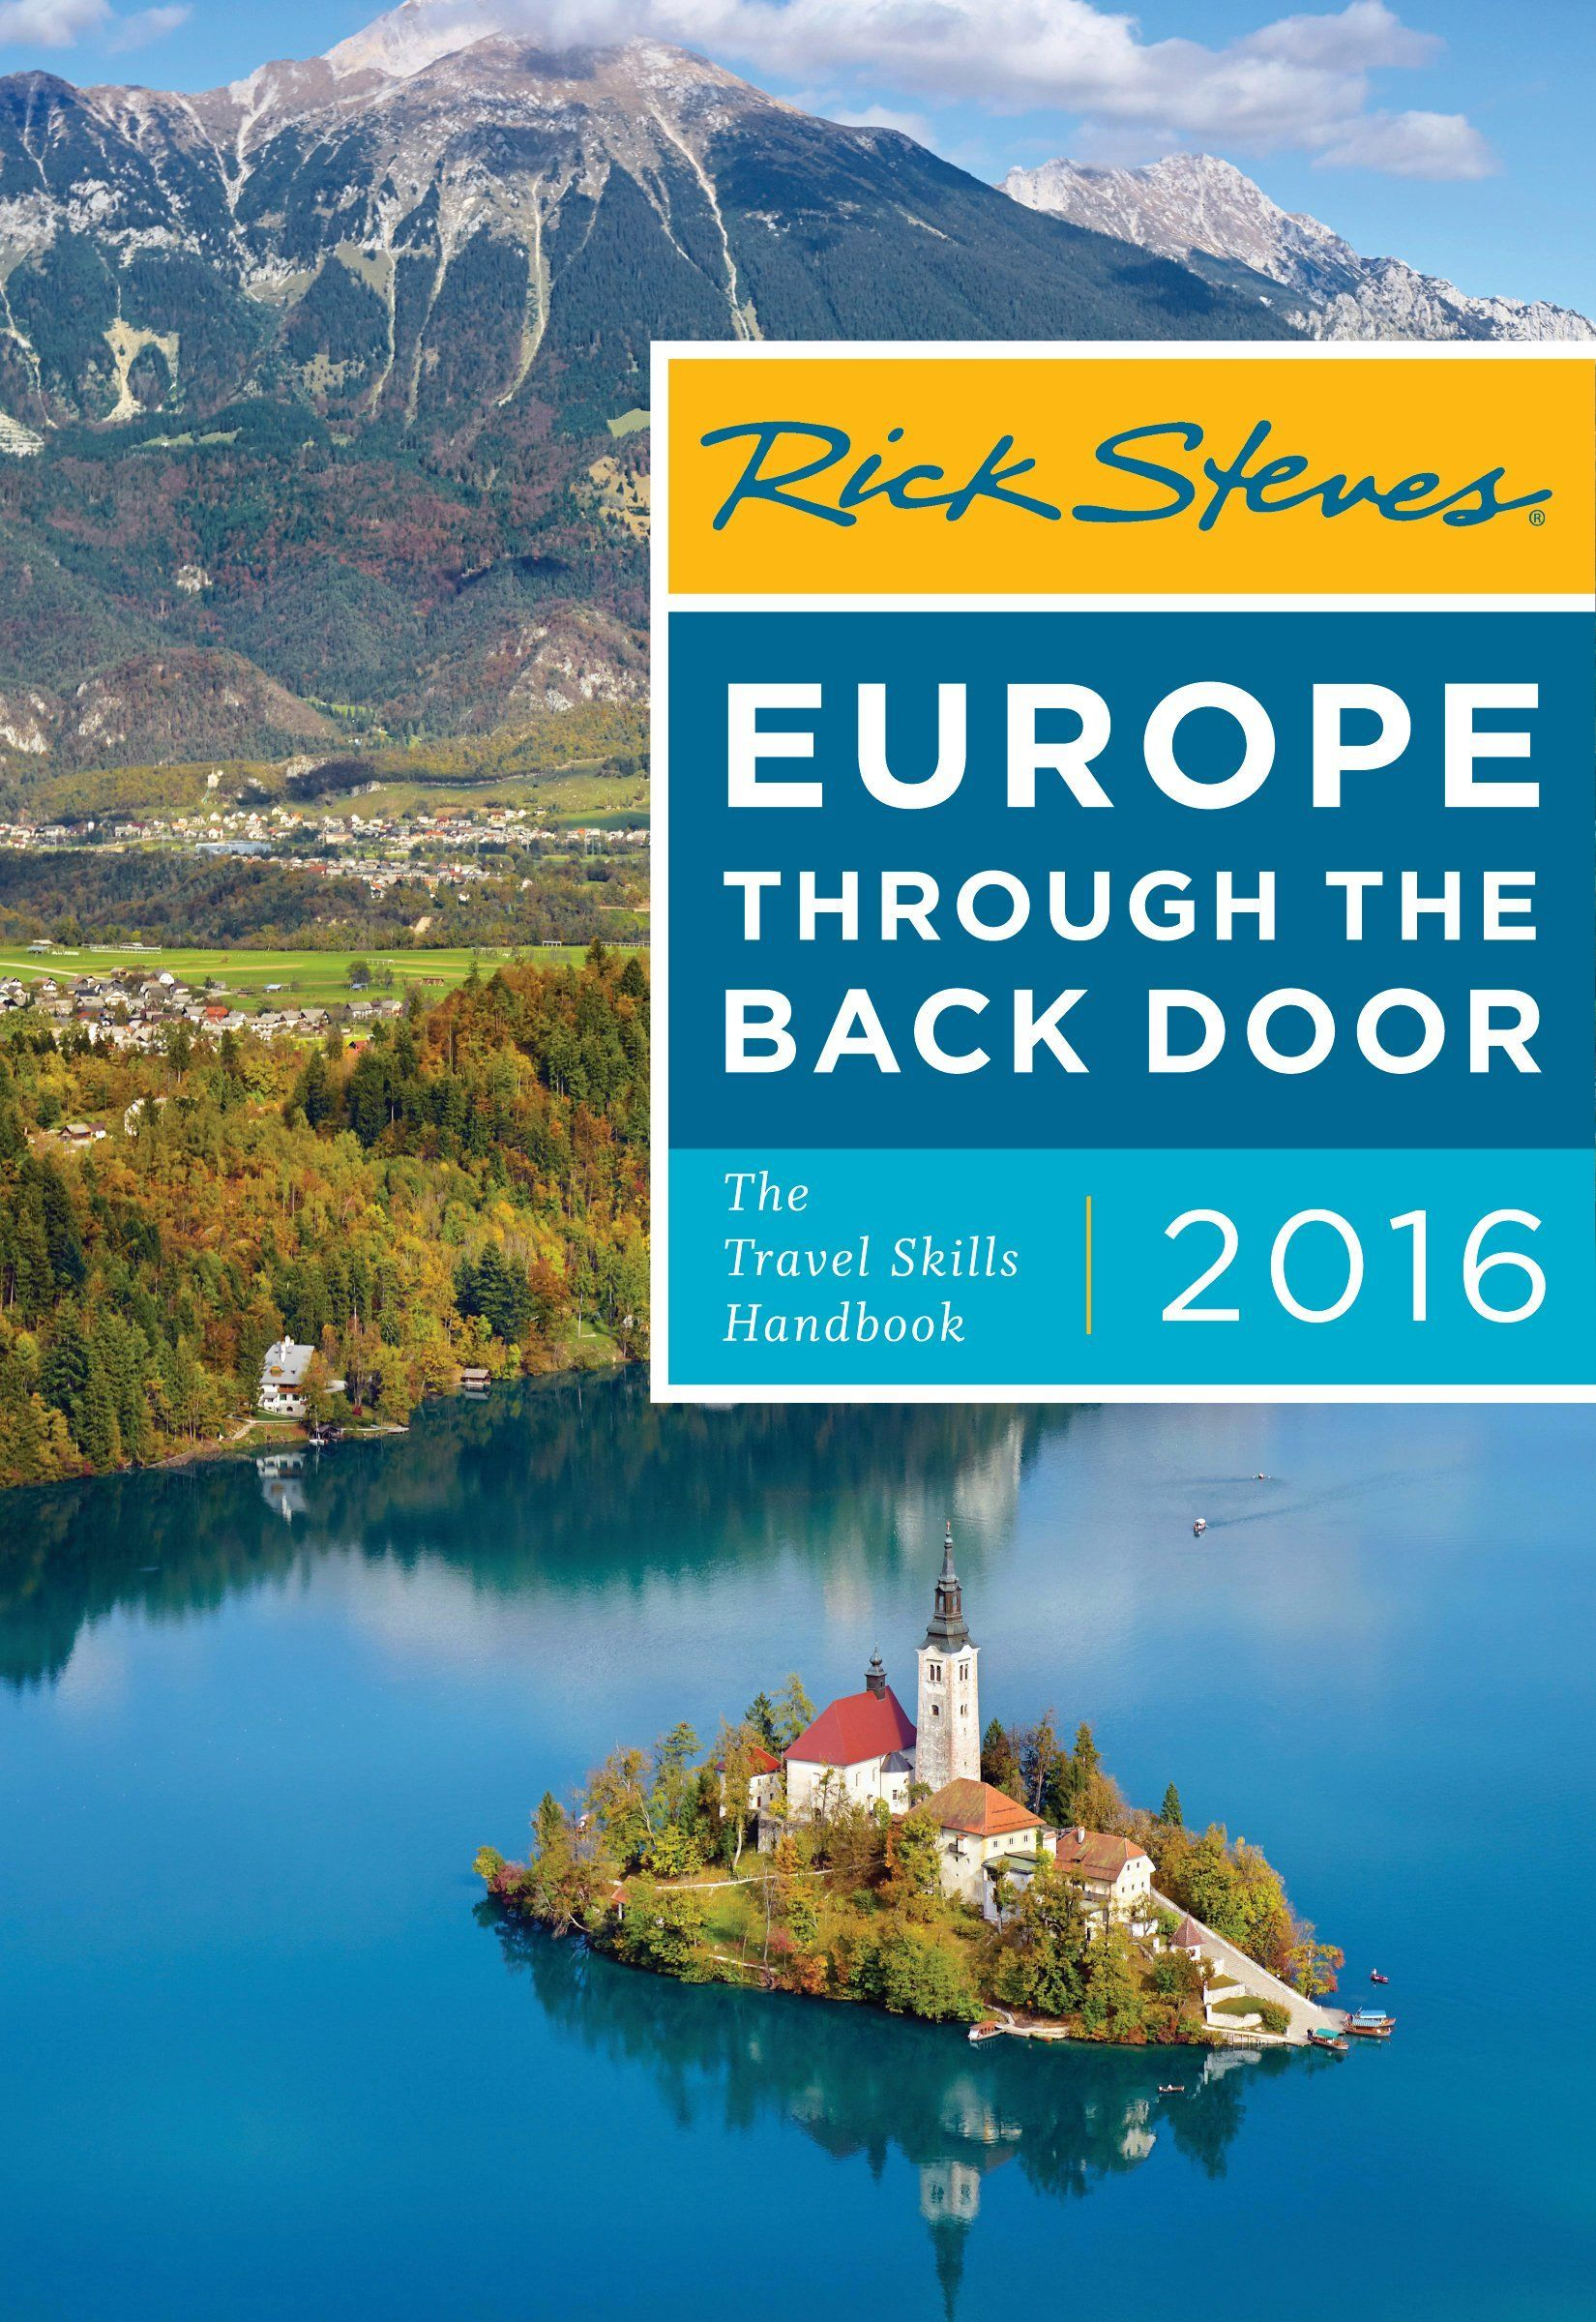 Rick steves recommends us